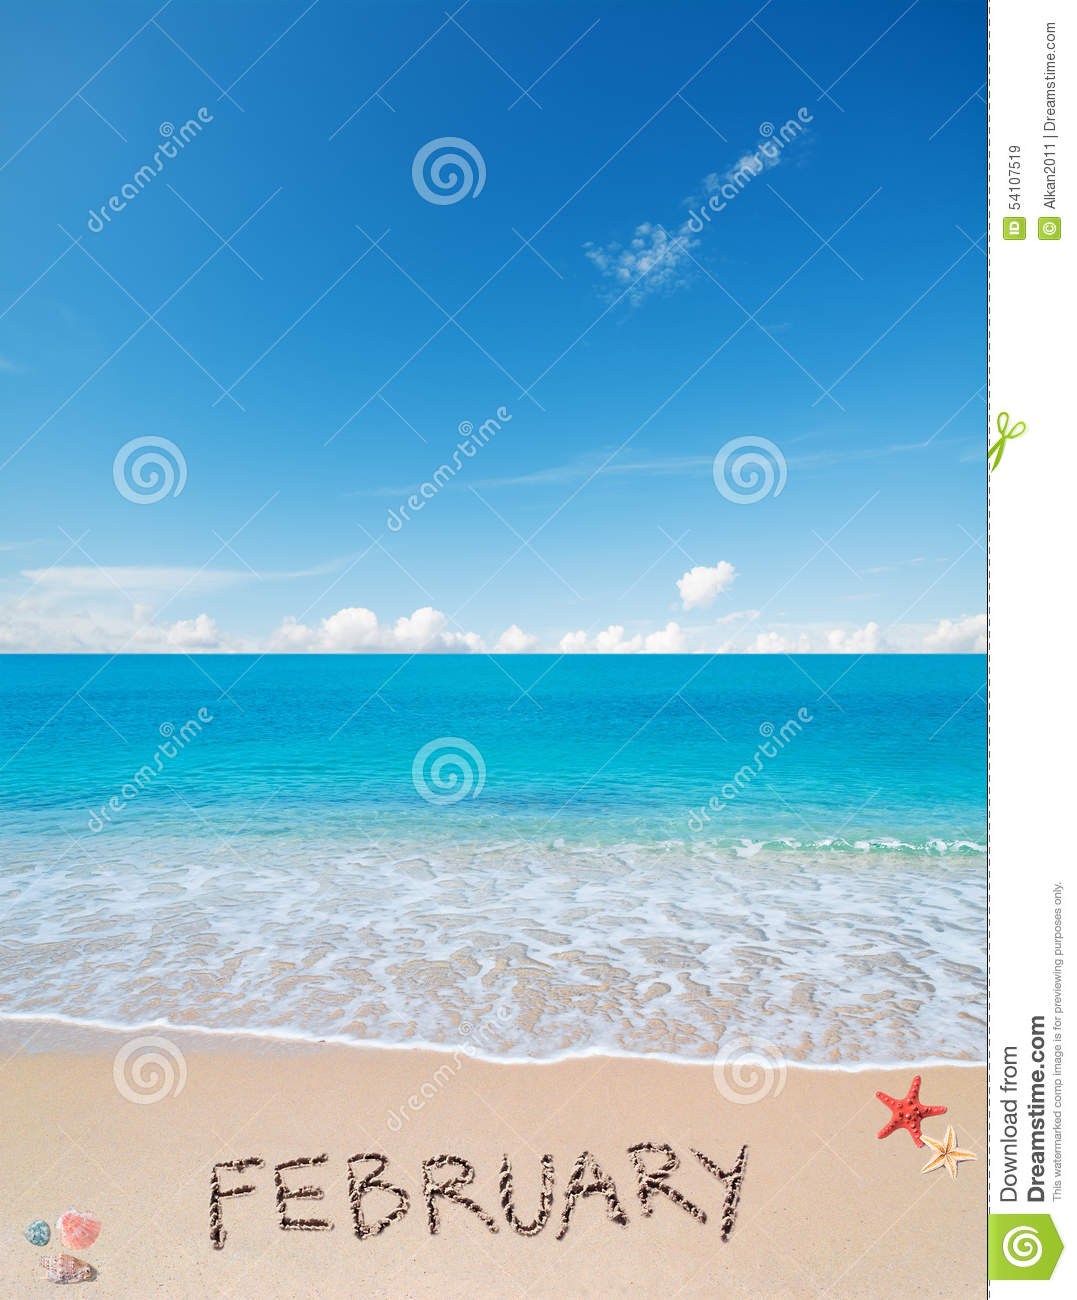 February on a tropical beach